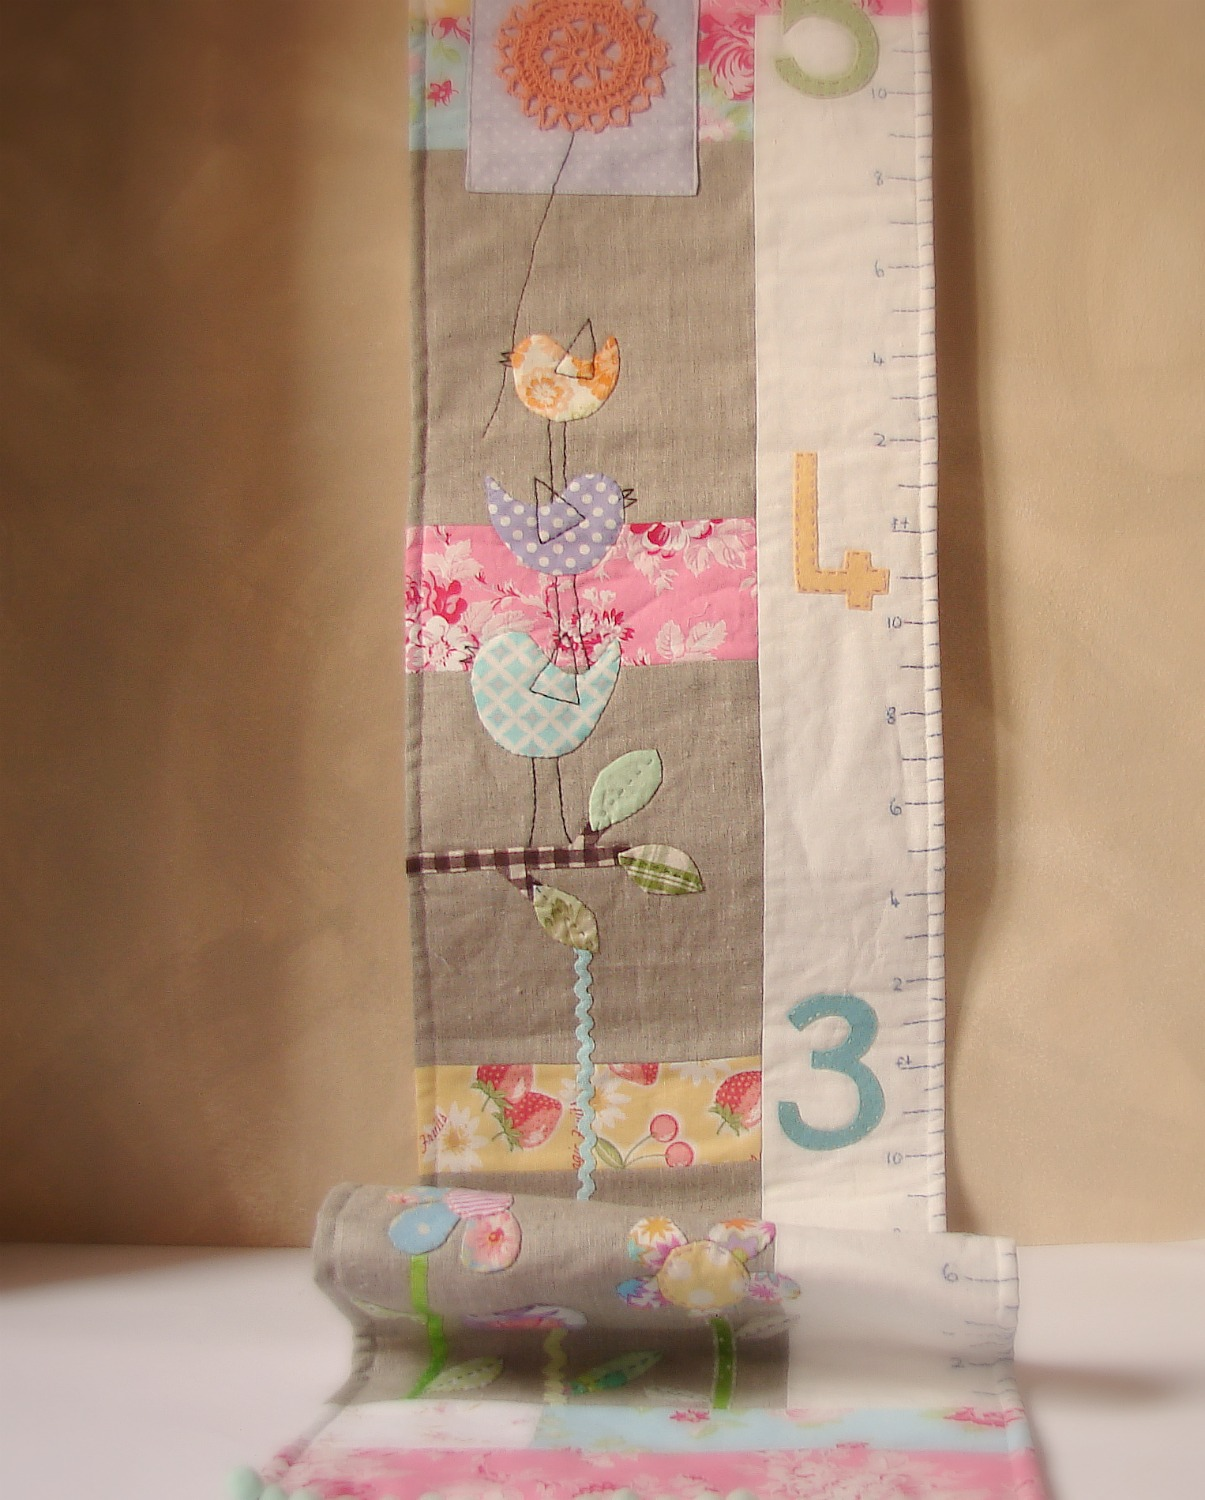 Growth chart etsy orange growth chart etsy nvjuhfo Gallery